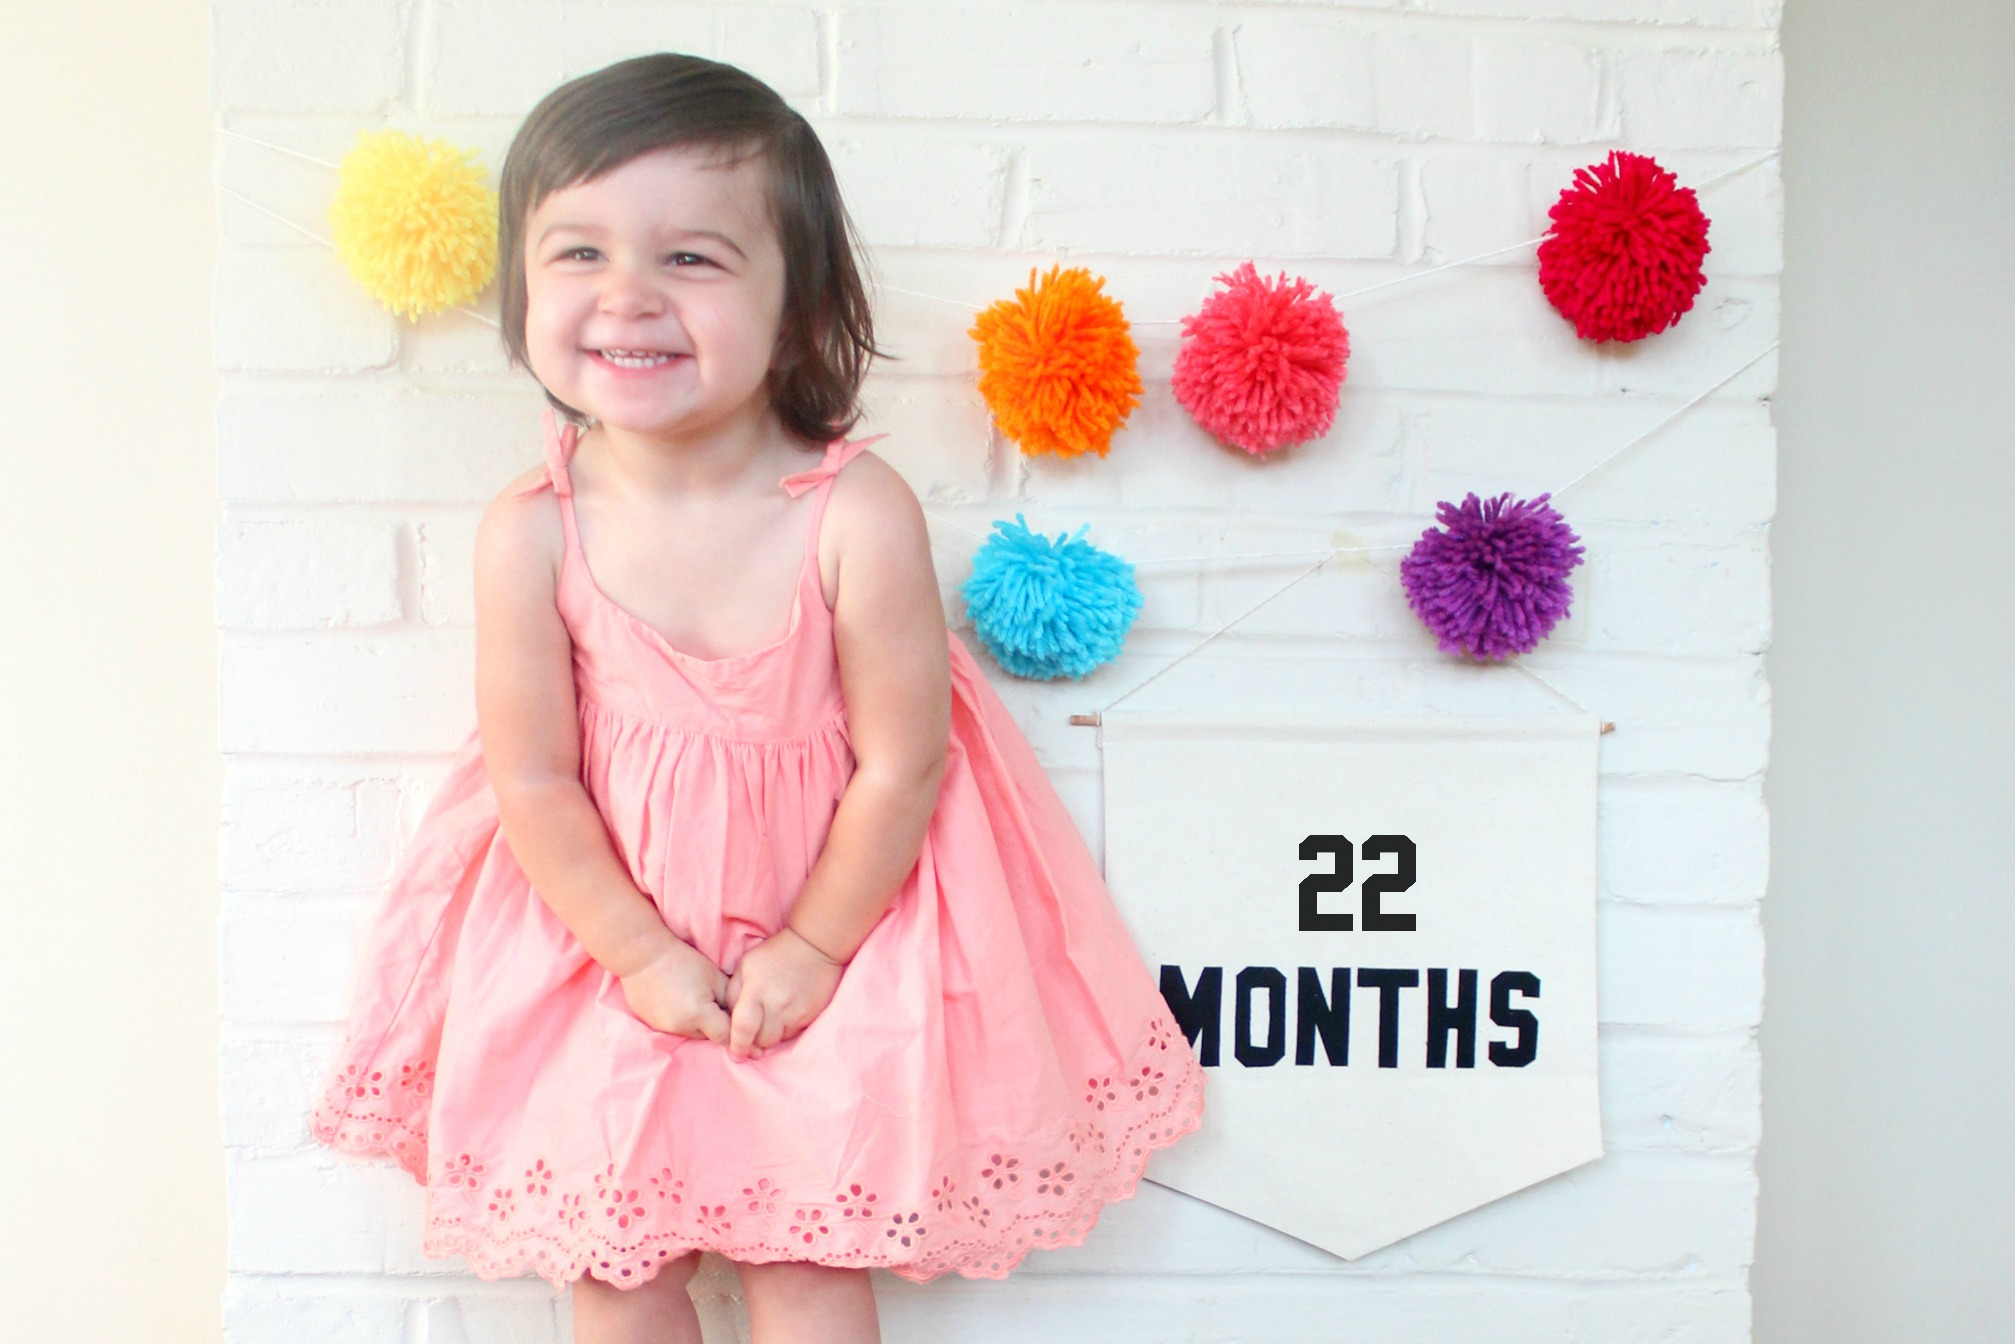 Catching Up With Carmendy {22 Months Old}